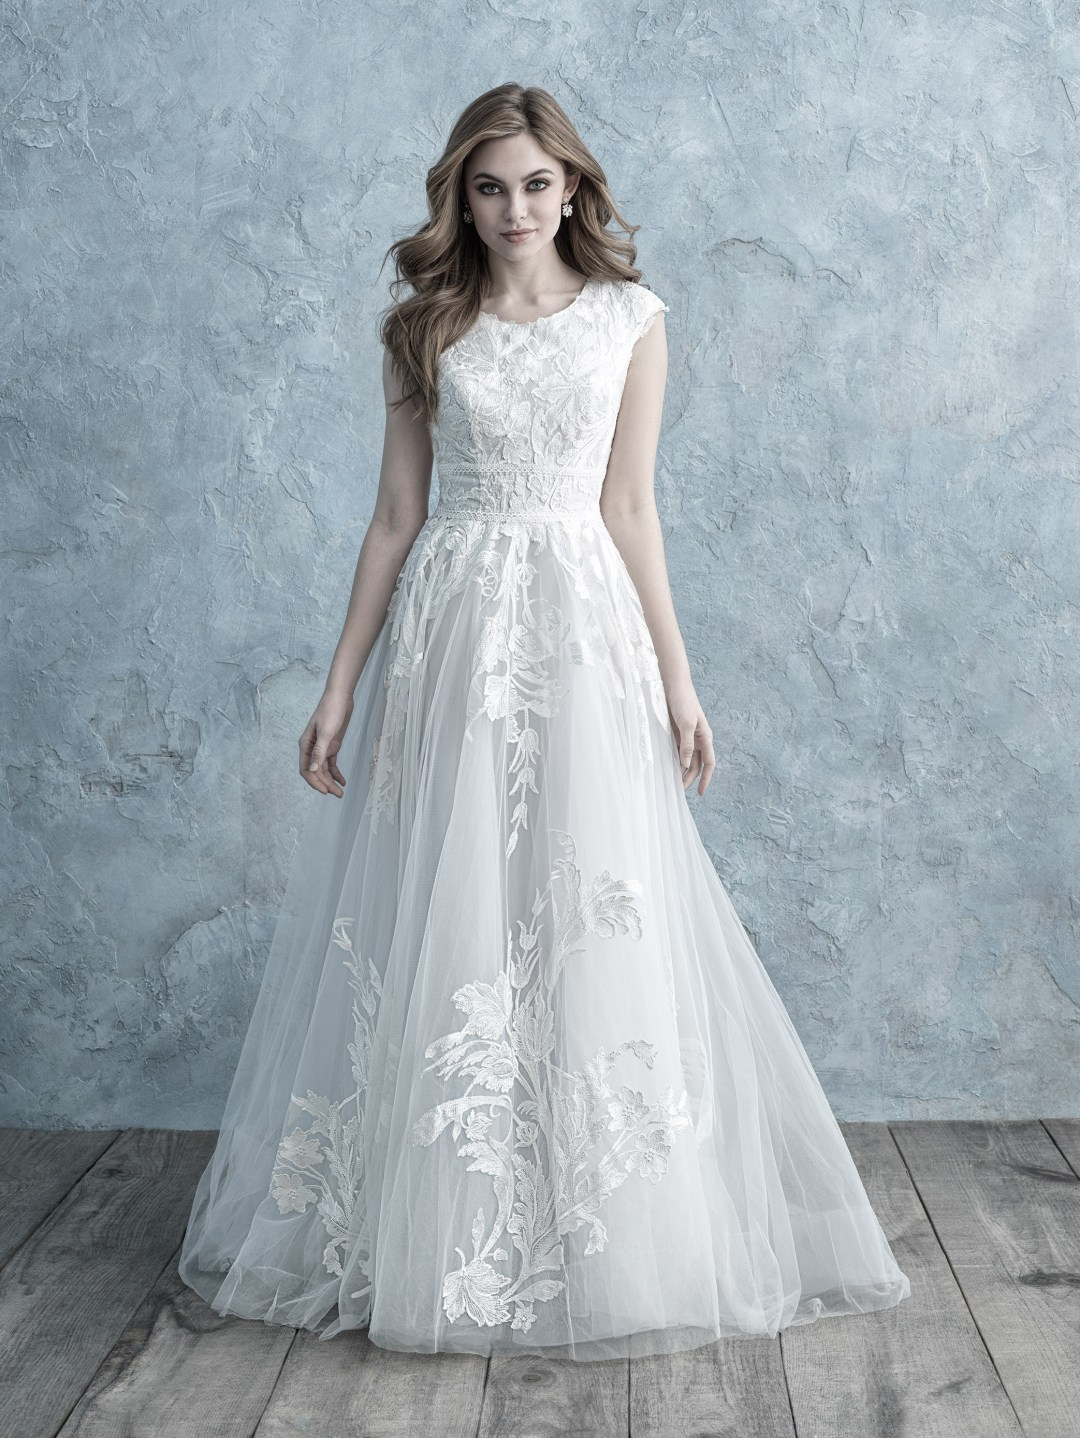 25 Modest Ball Gown Wedding Dresses - 11